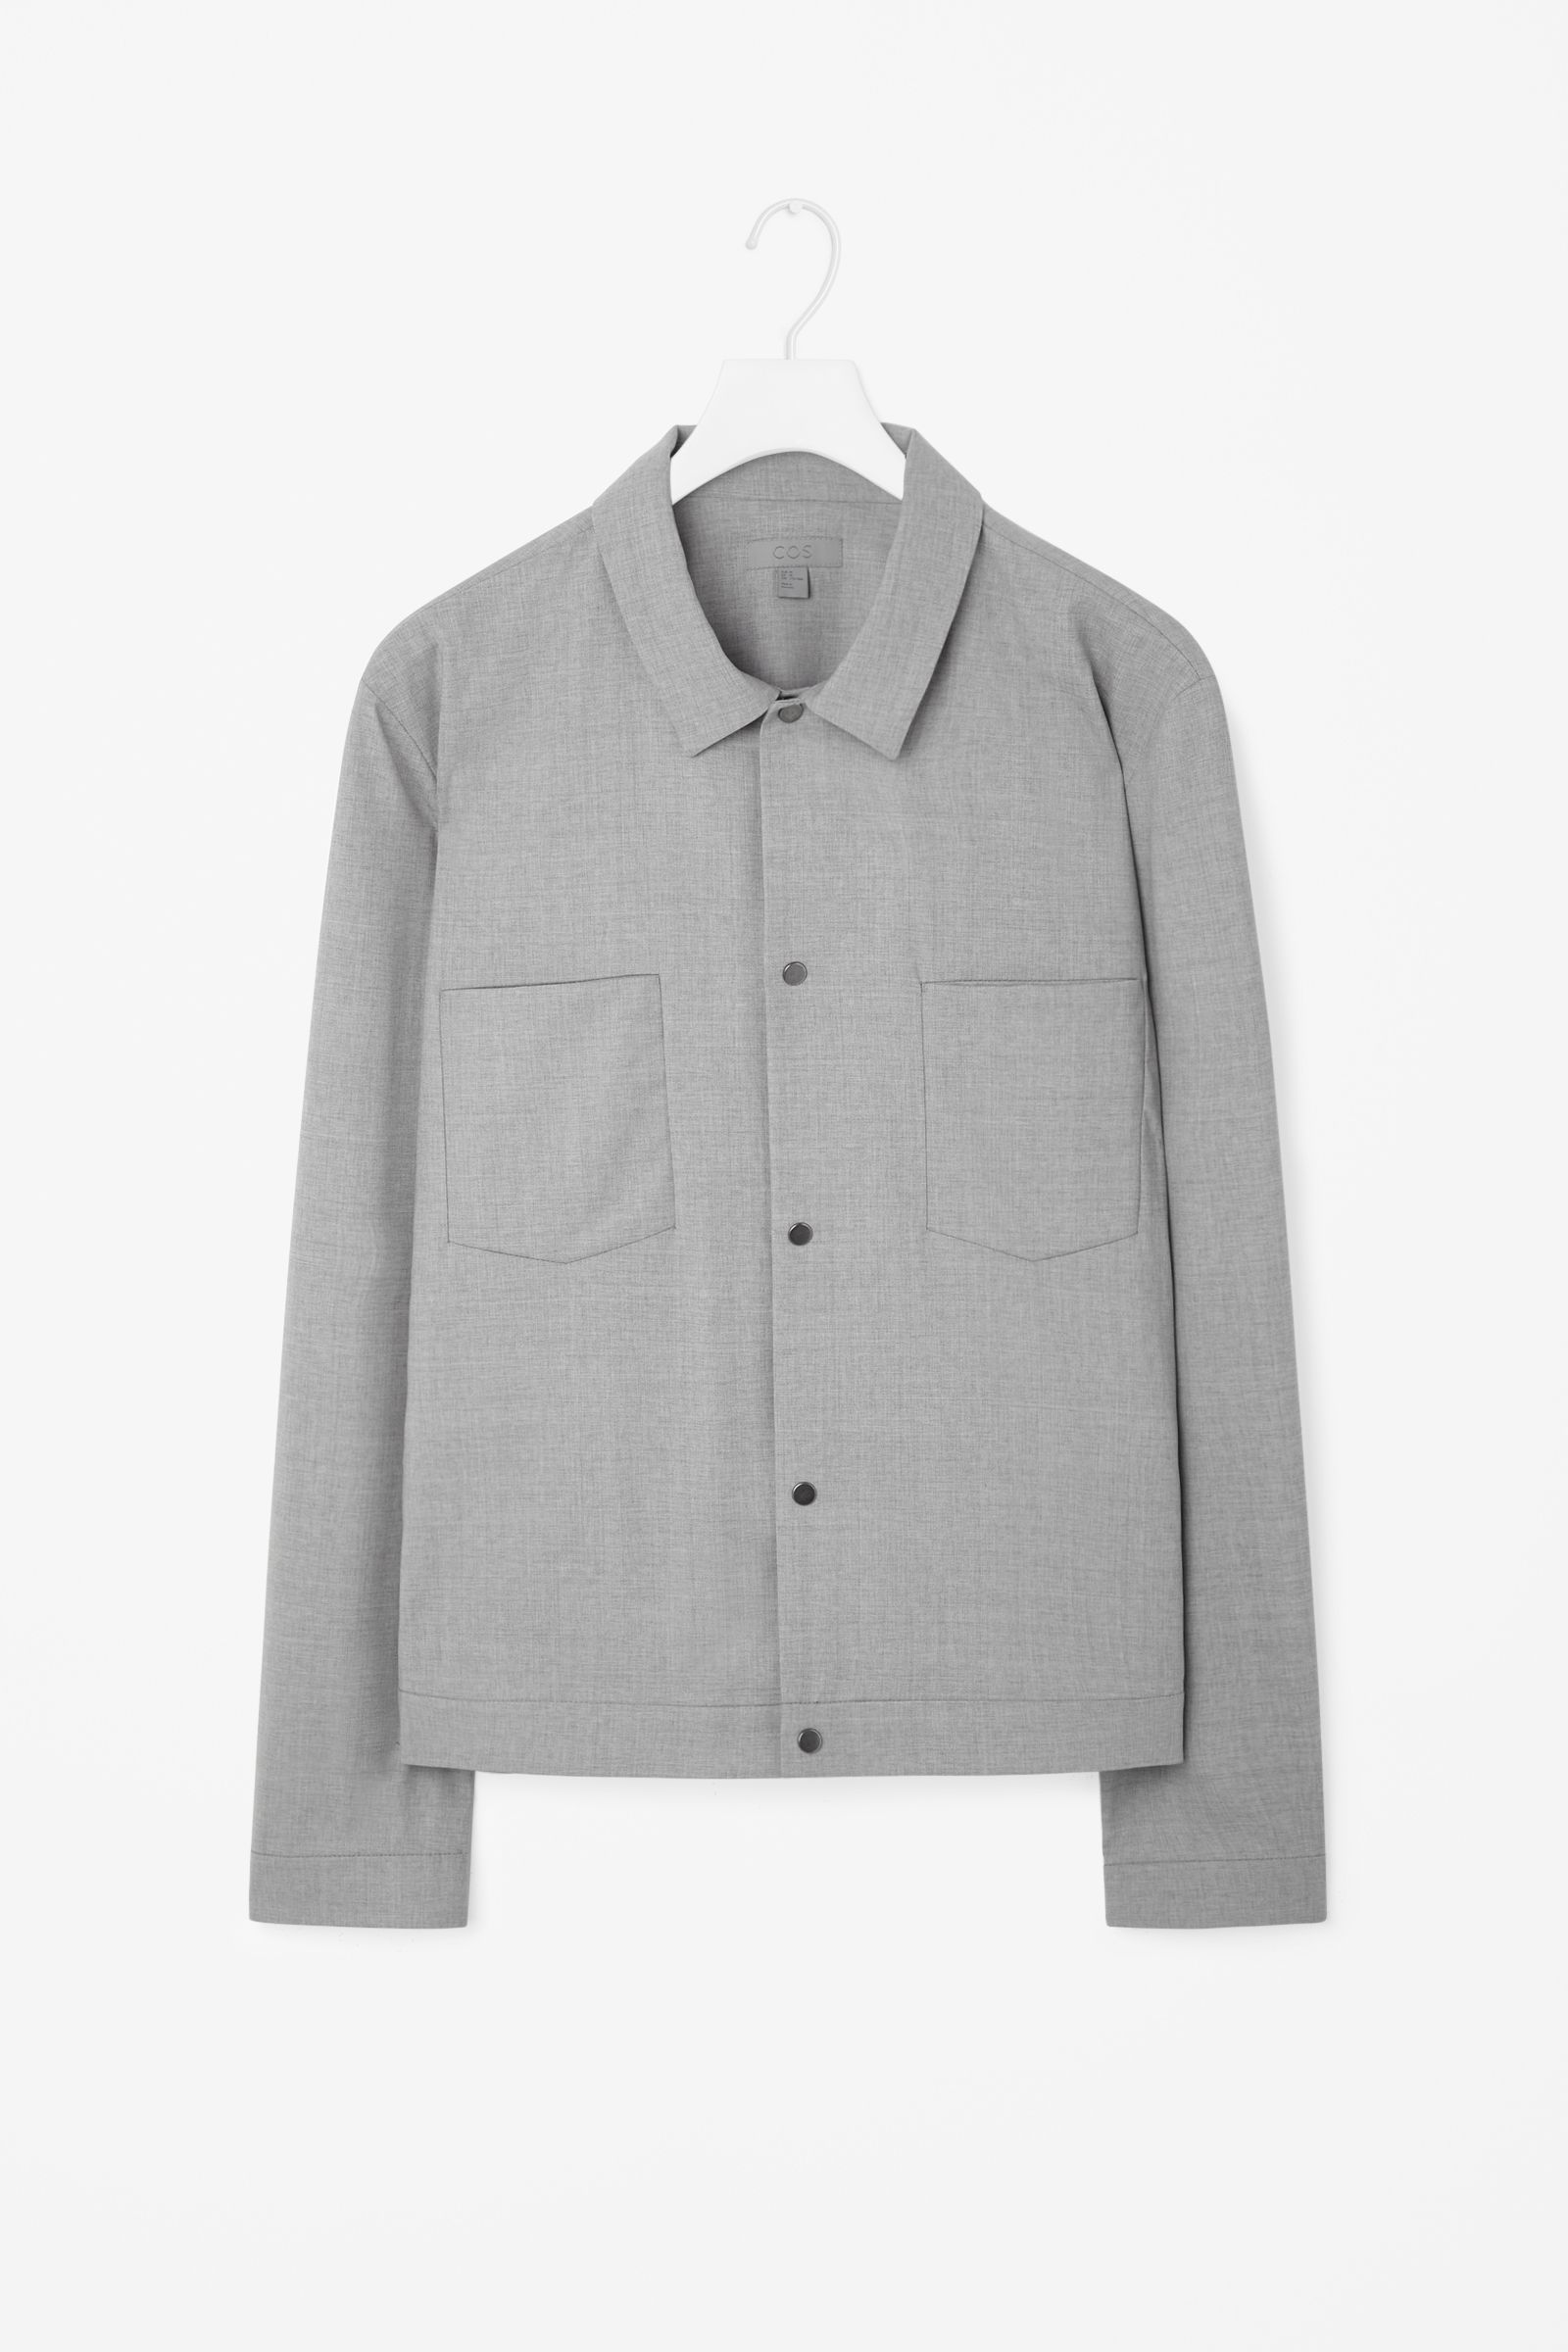 Shirt jacket design - Based On The Shape Of A Shirt This Lightweight Jacket Is Made From Fine Wool Mix A Clean Modern Design It Has A Pointed Collar Flat Chest Pockets And